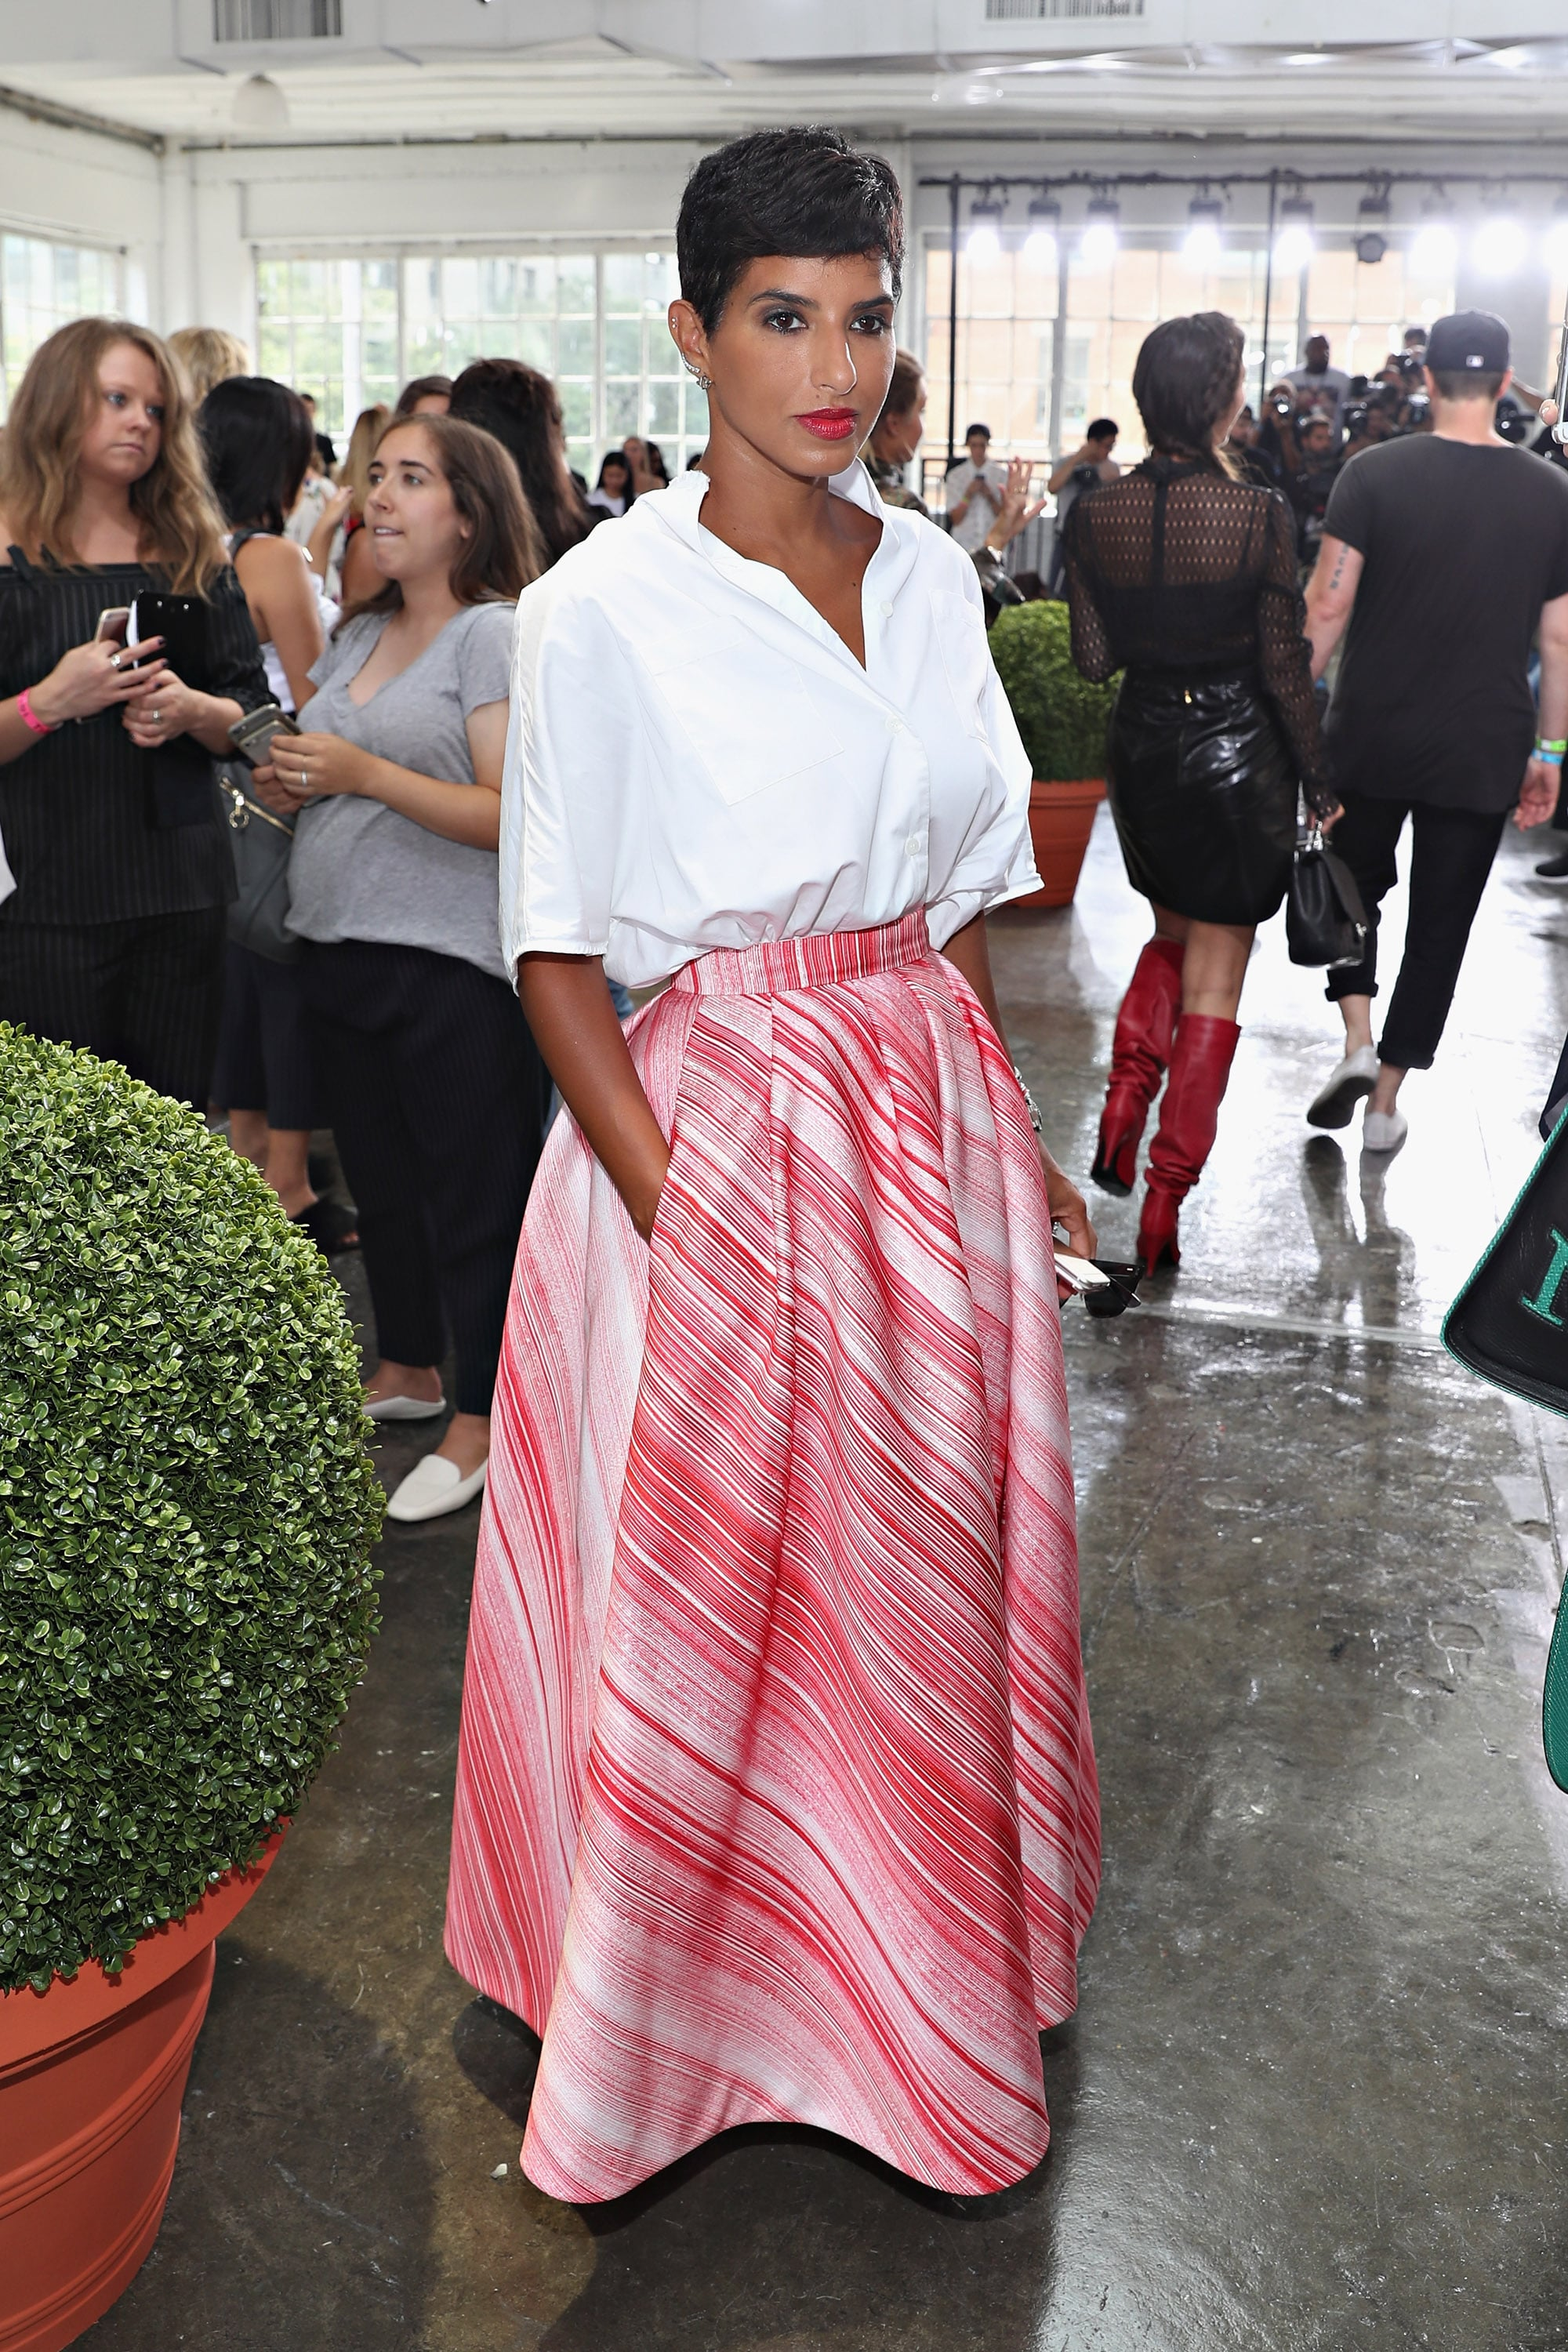 She Finds Fresh Ways to Remix a White Button-Down — Like With a Poufy, Pink Skirt